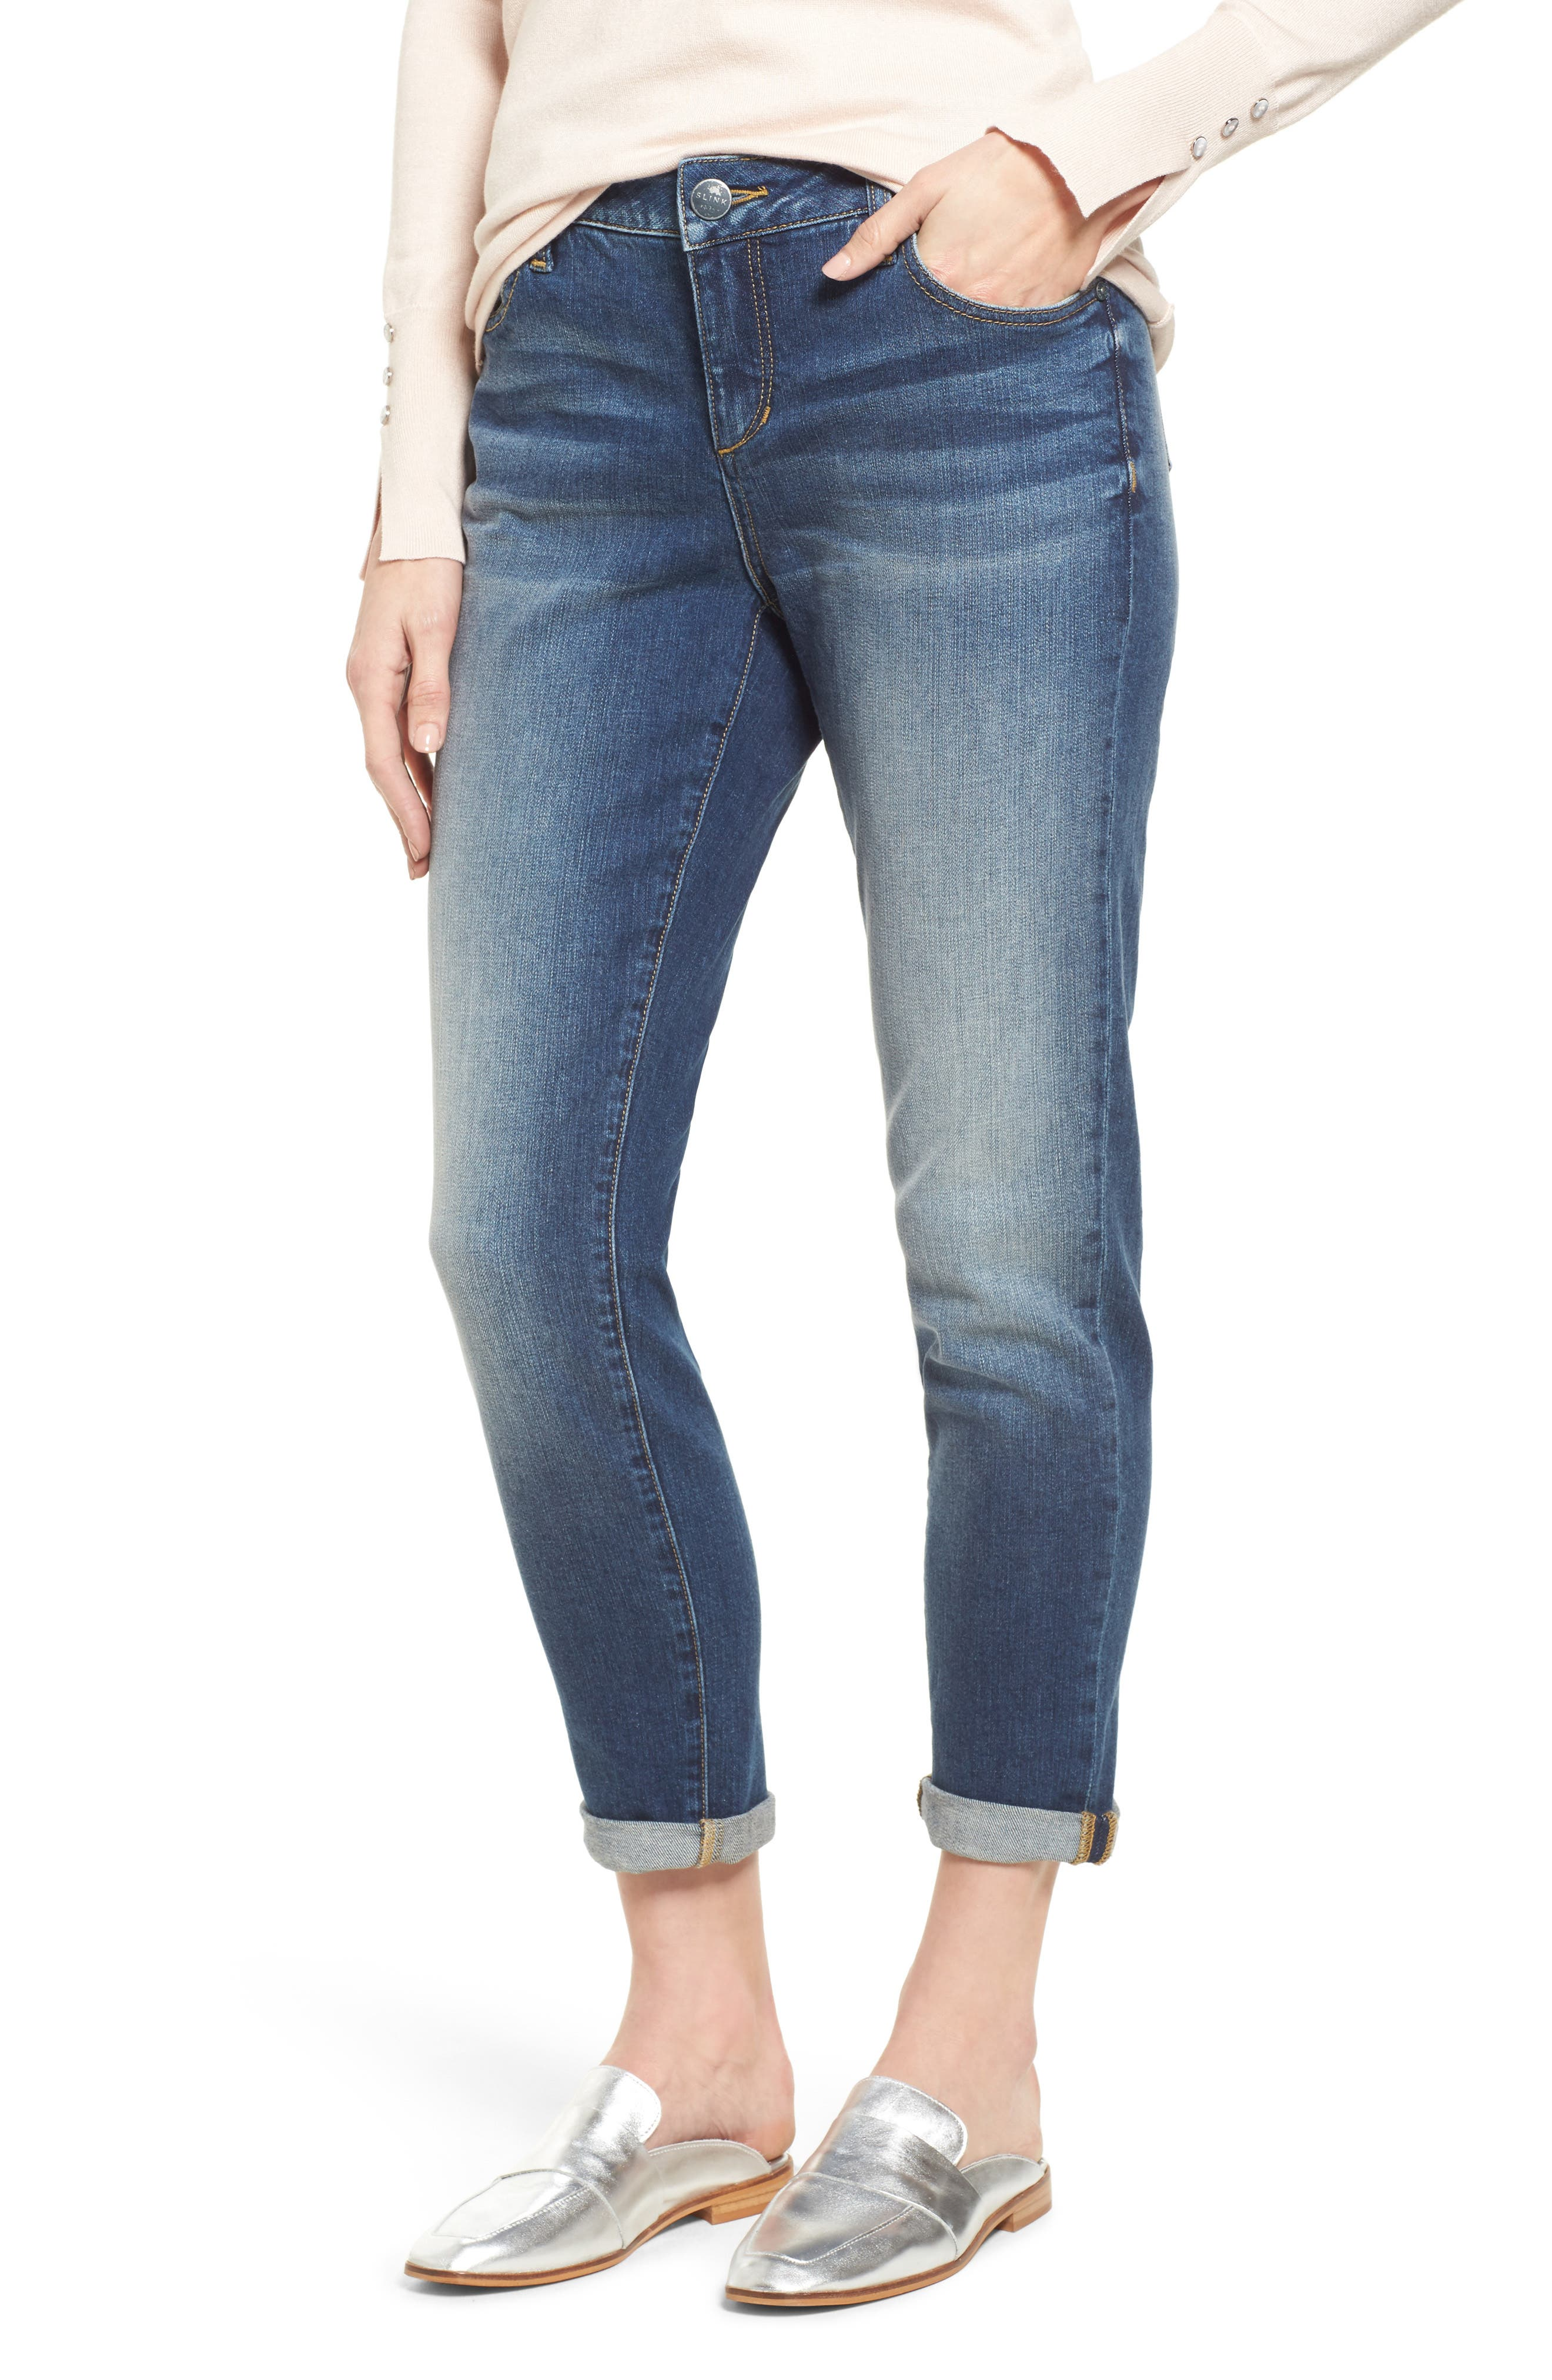 SLINK JEANS,                             Rolled Boyfriend Jeans,                             Main thumbnail 1, color,                             VAL